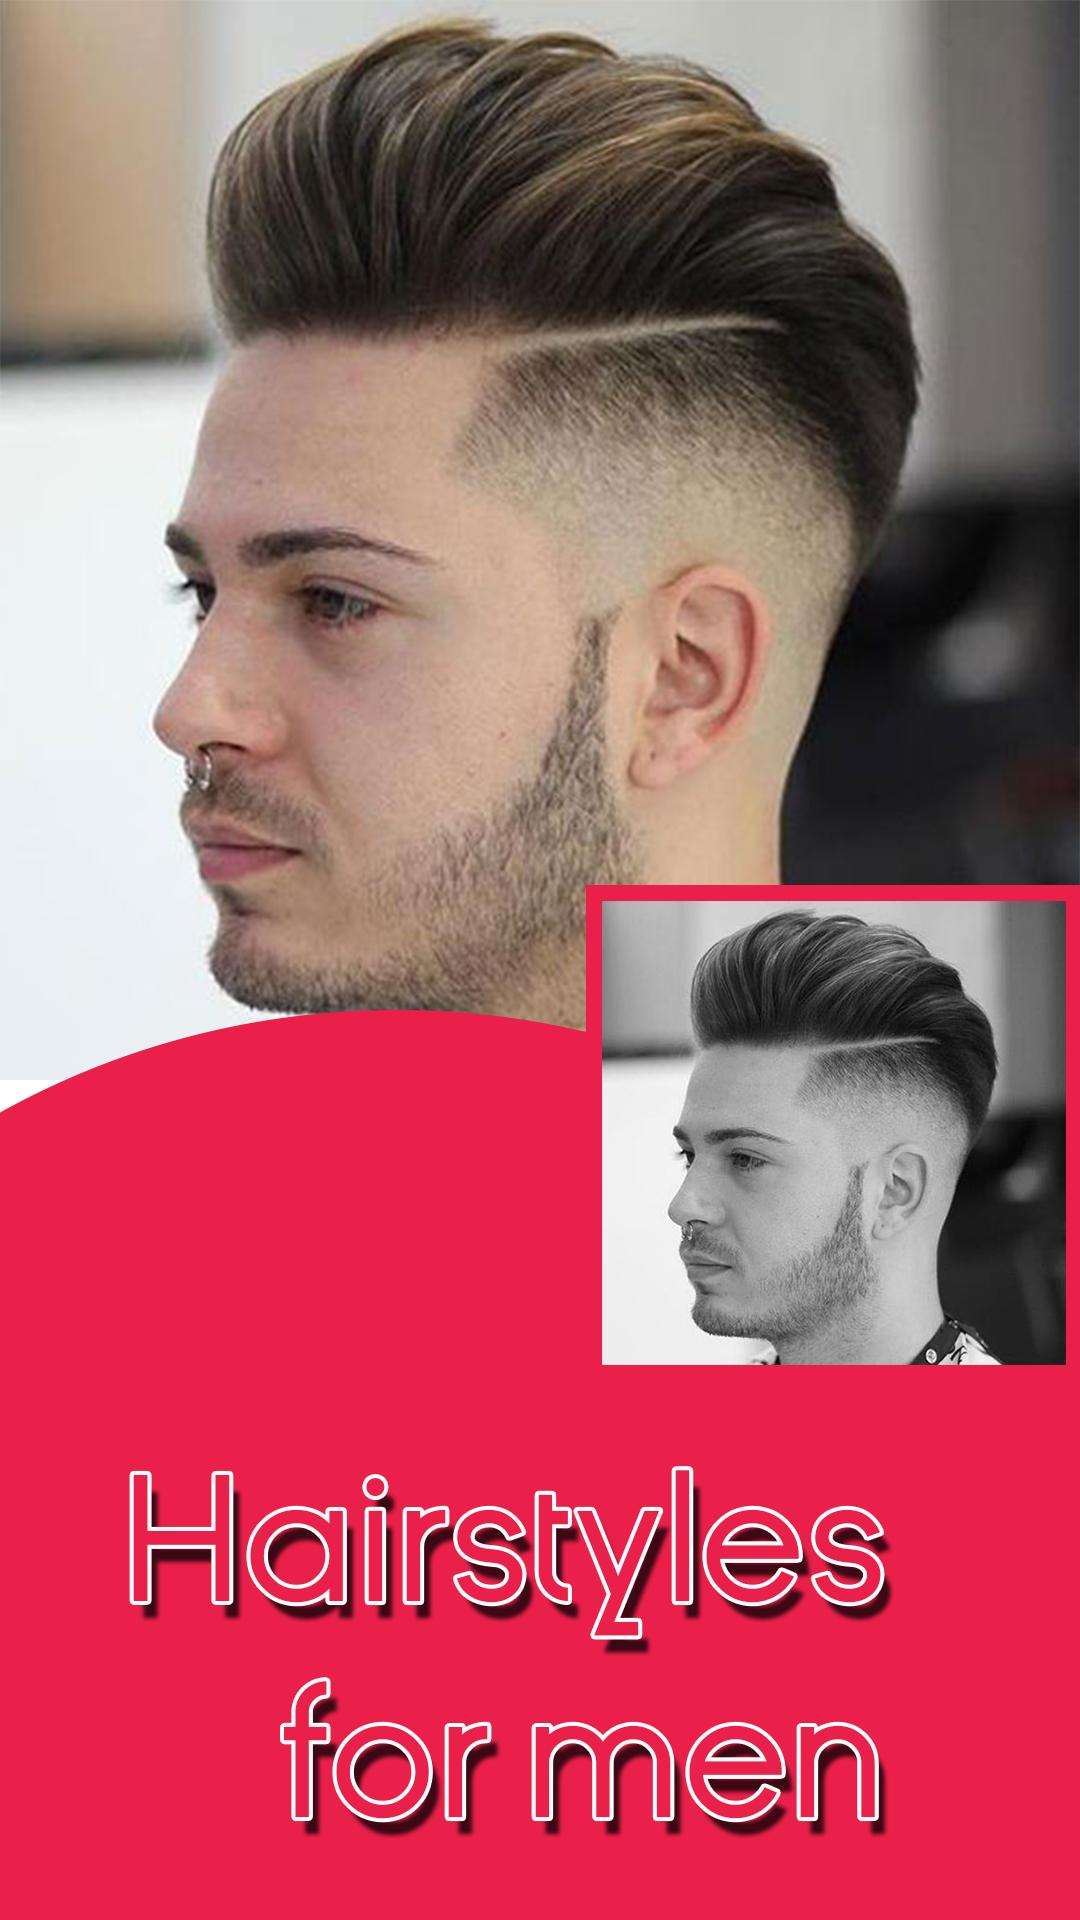 Hairstyle For Men Videos For Android Apk Download